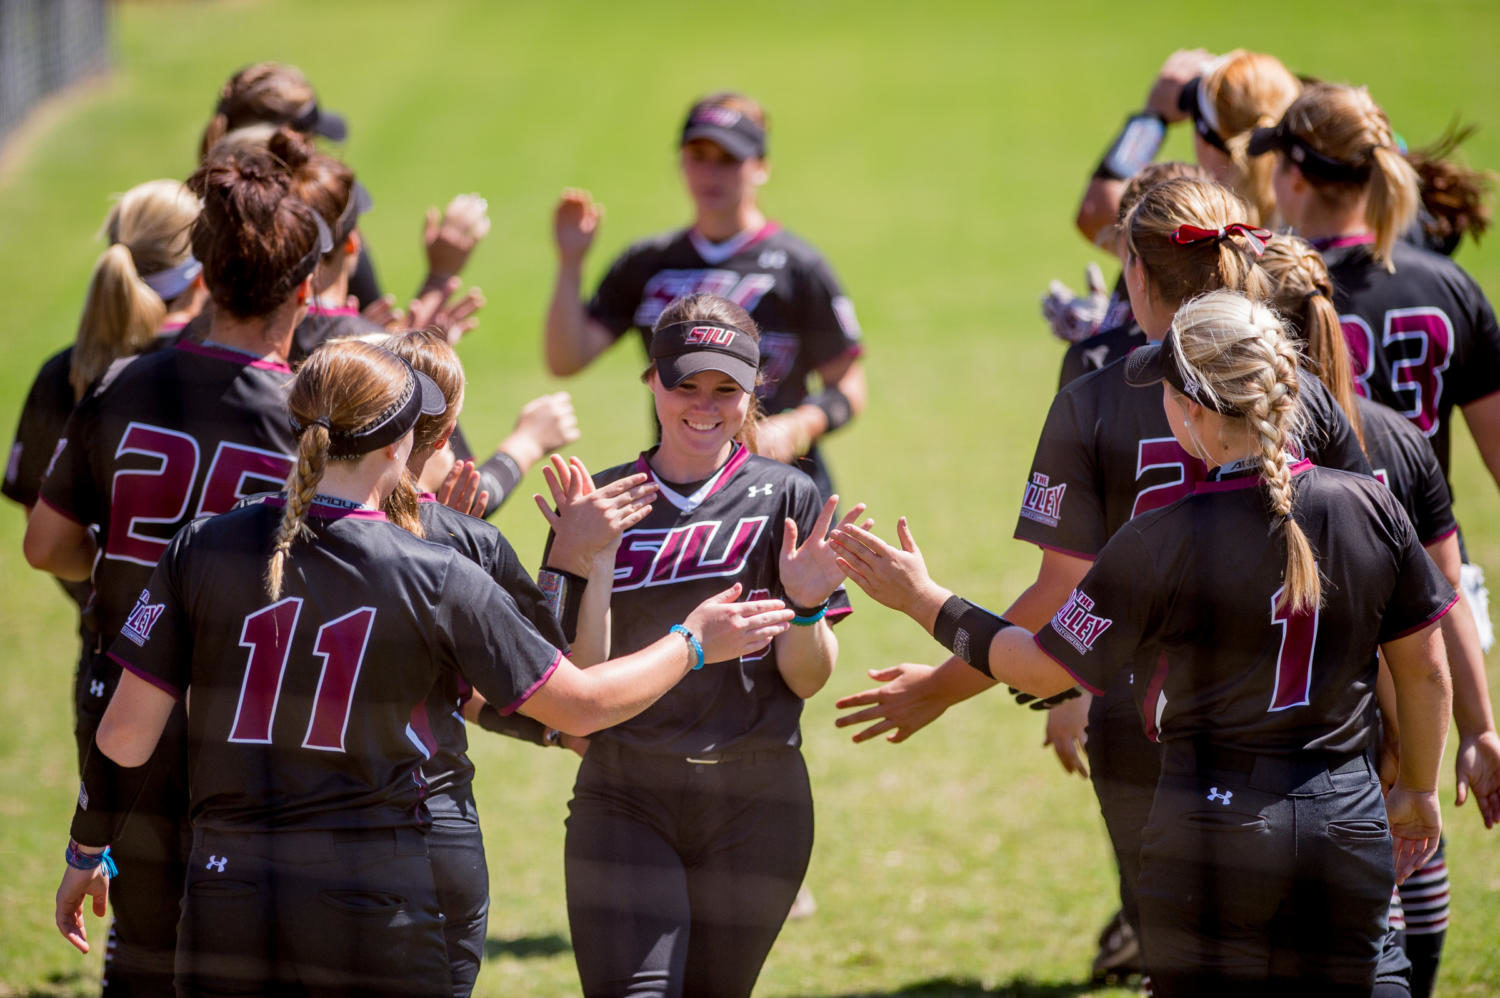 Sophomore outfielder Susie Baranski (center) high fives teammates Sunday, Sept. 10, 2017, before the start of their home opener against Rend Lake College at Brechtelsbauer Field. The Saluki Softball team returns to SIU after winning the 2017 Missouri Valley Conference championship. (Brian Muñoz | @BrianMMunoz)